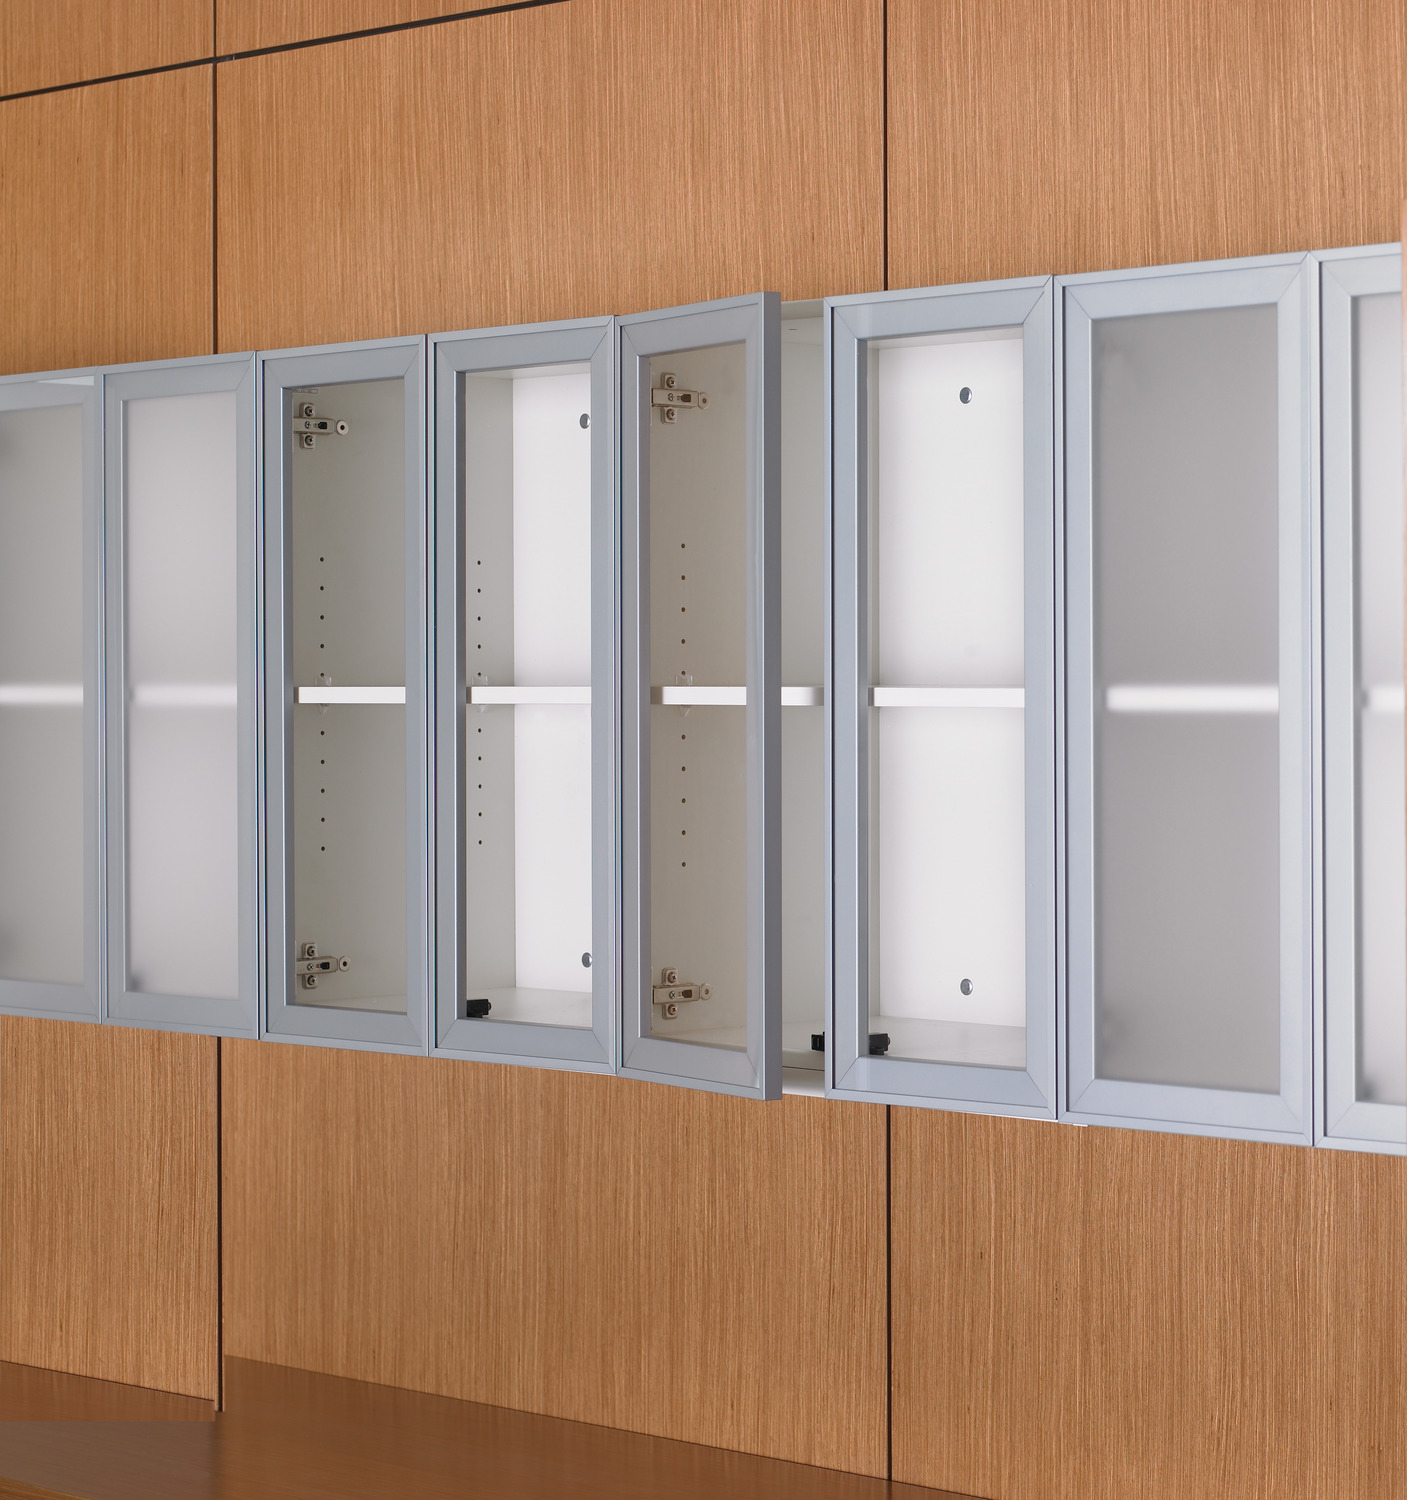 Modular Cabinets Wall Cabinet with Glass Doors